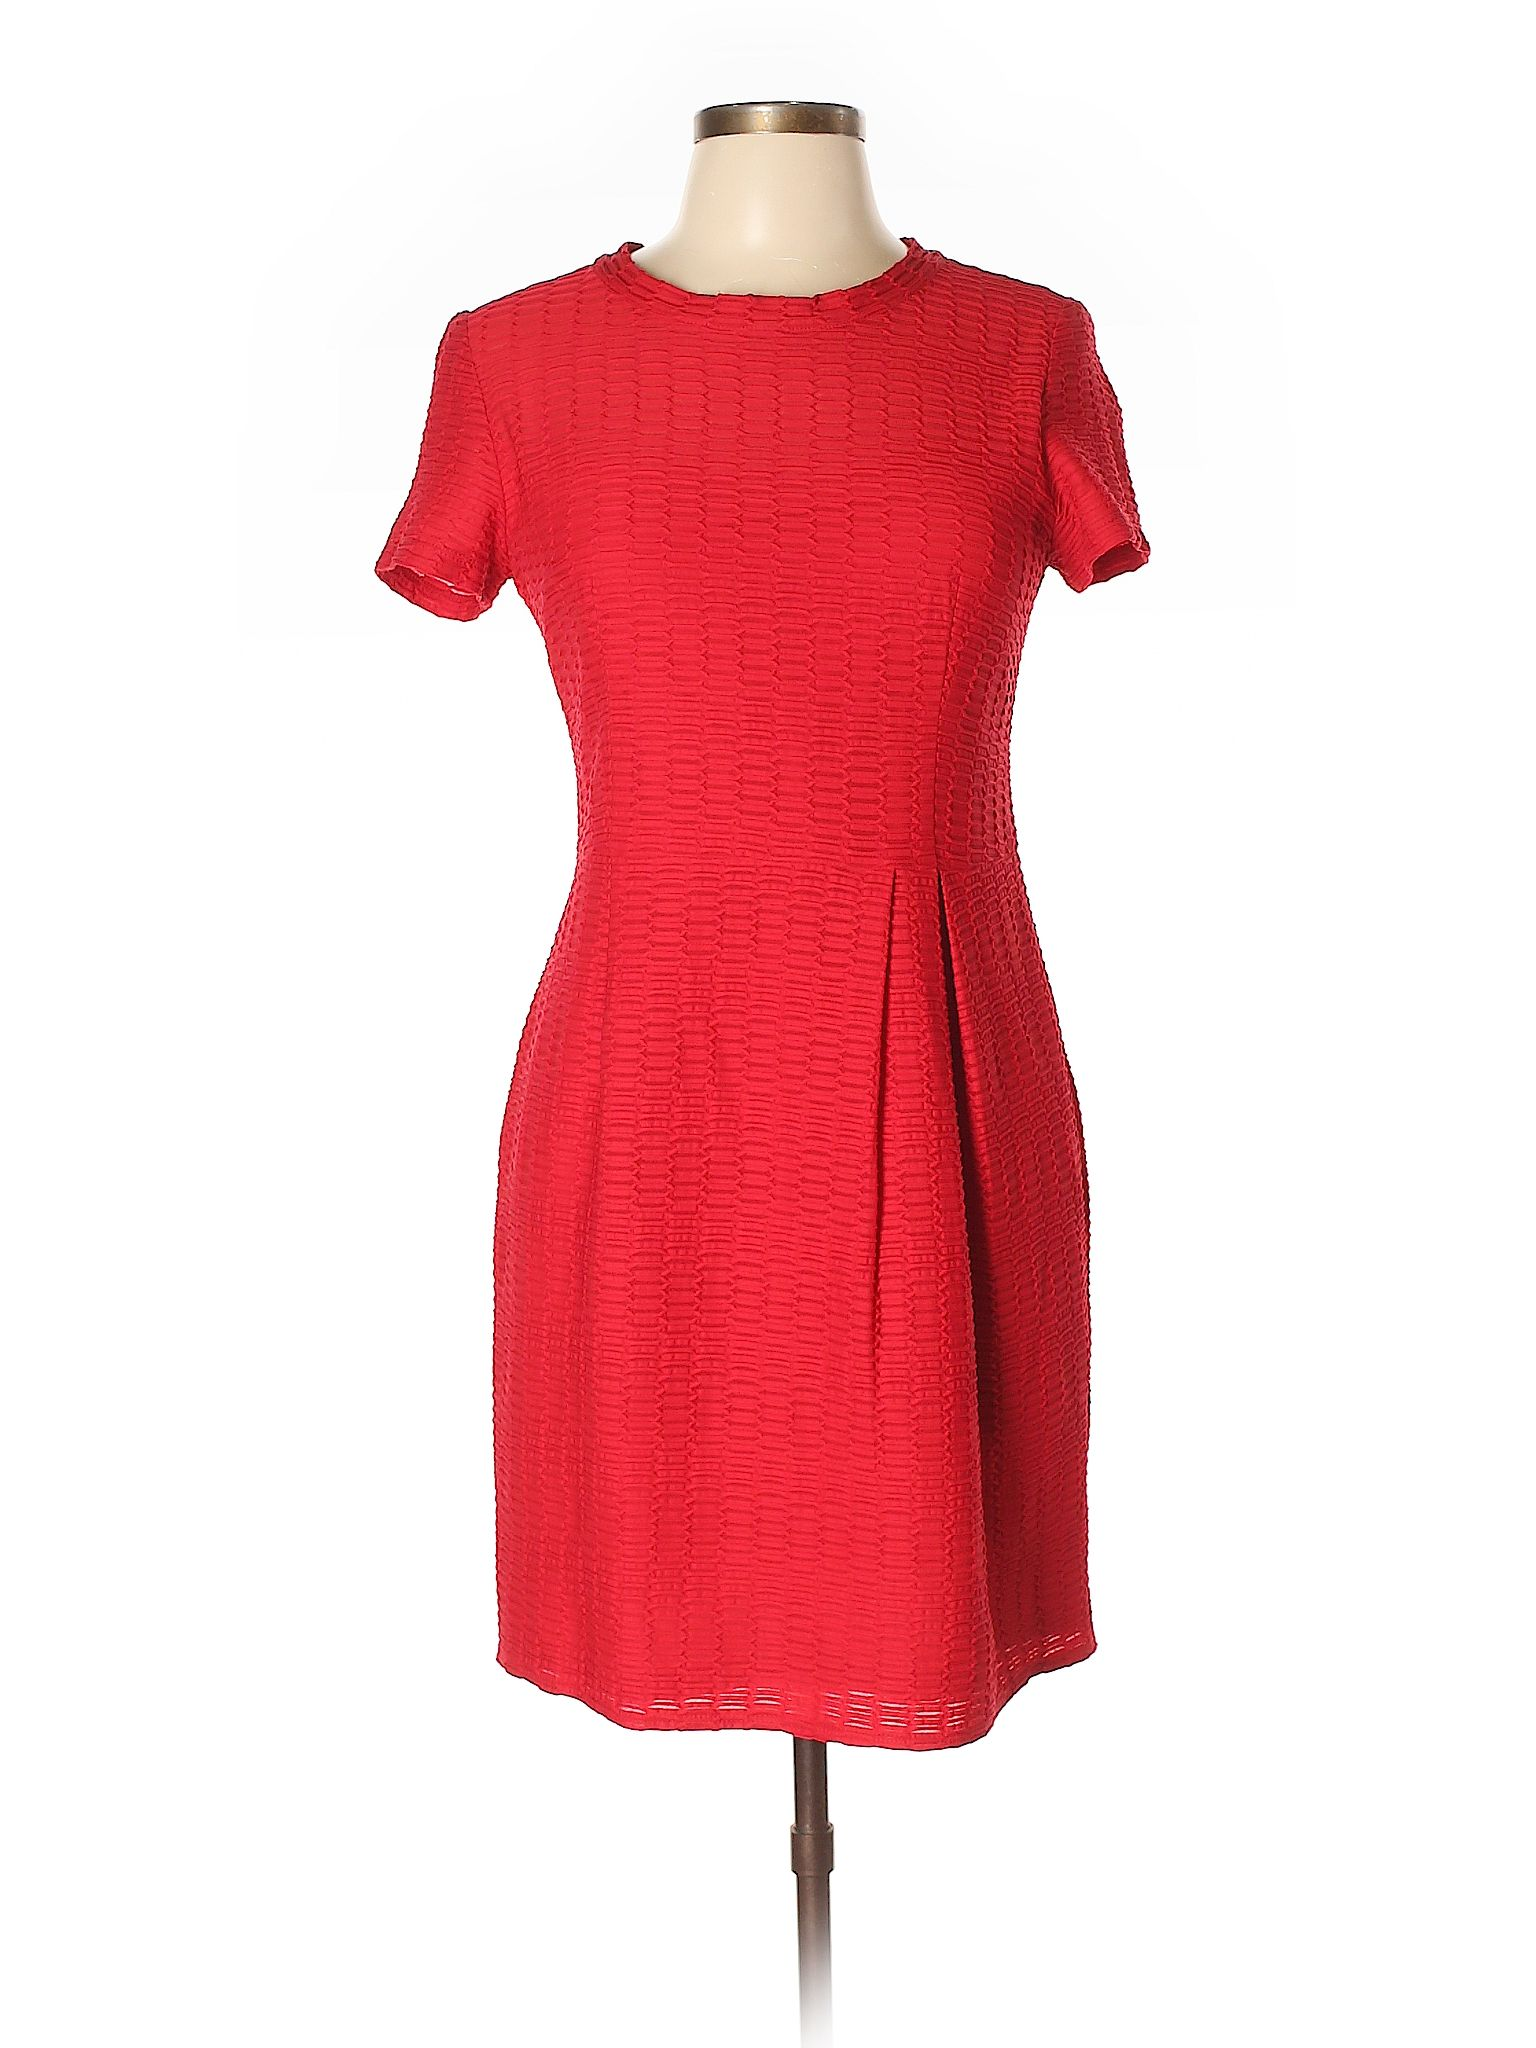 909ac4152862 Nanette Lepore Casual Dress: Size 10.00 Red Women's Dresses - $52.99 ...